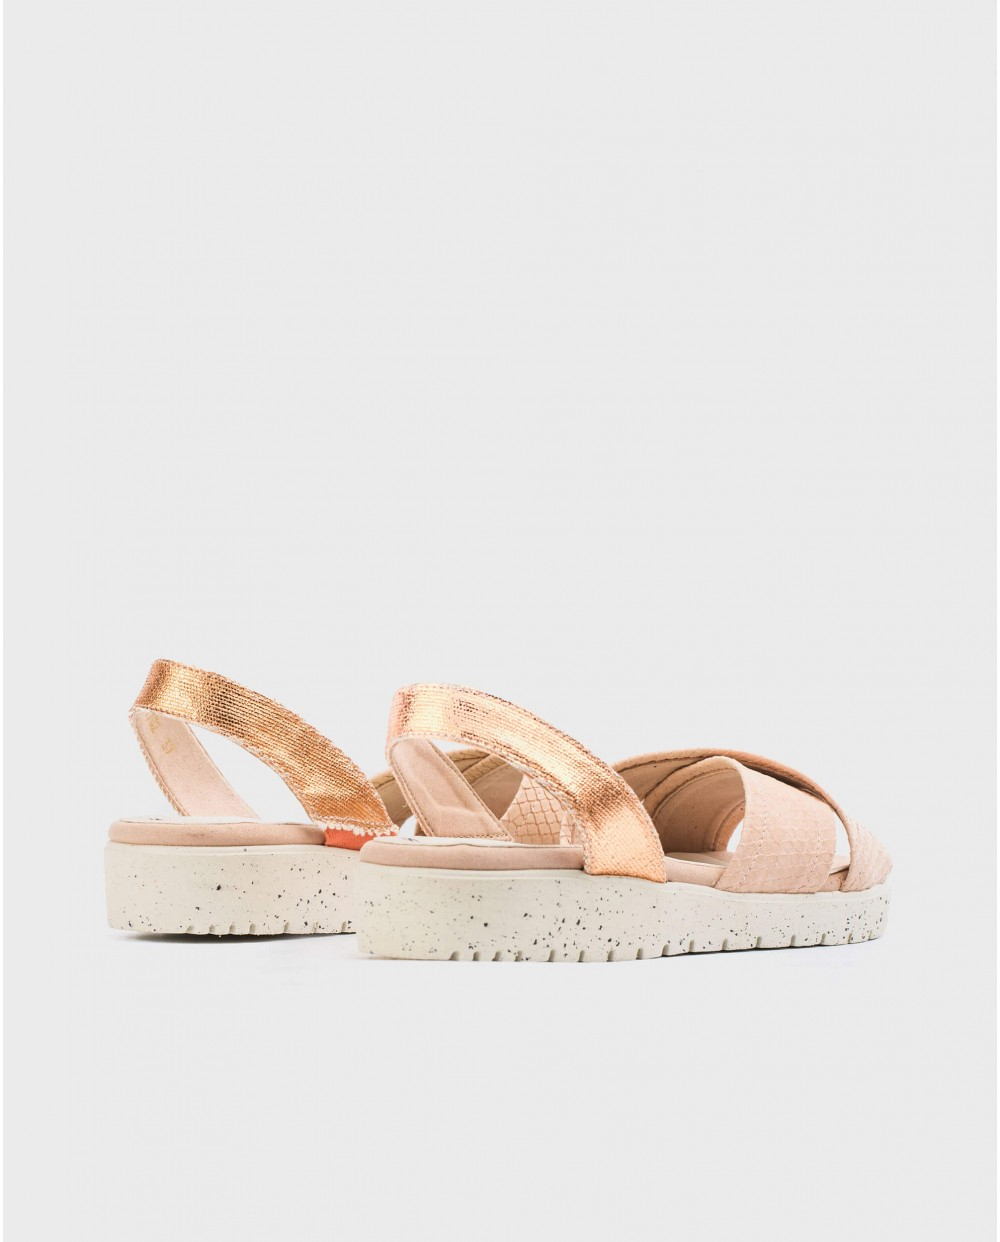 Wonders-Flat Shoes-KARA